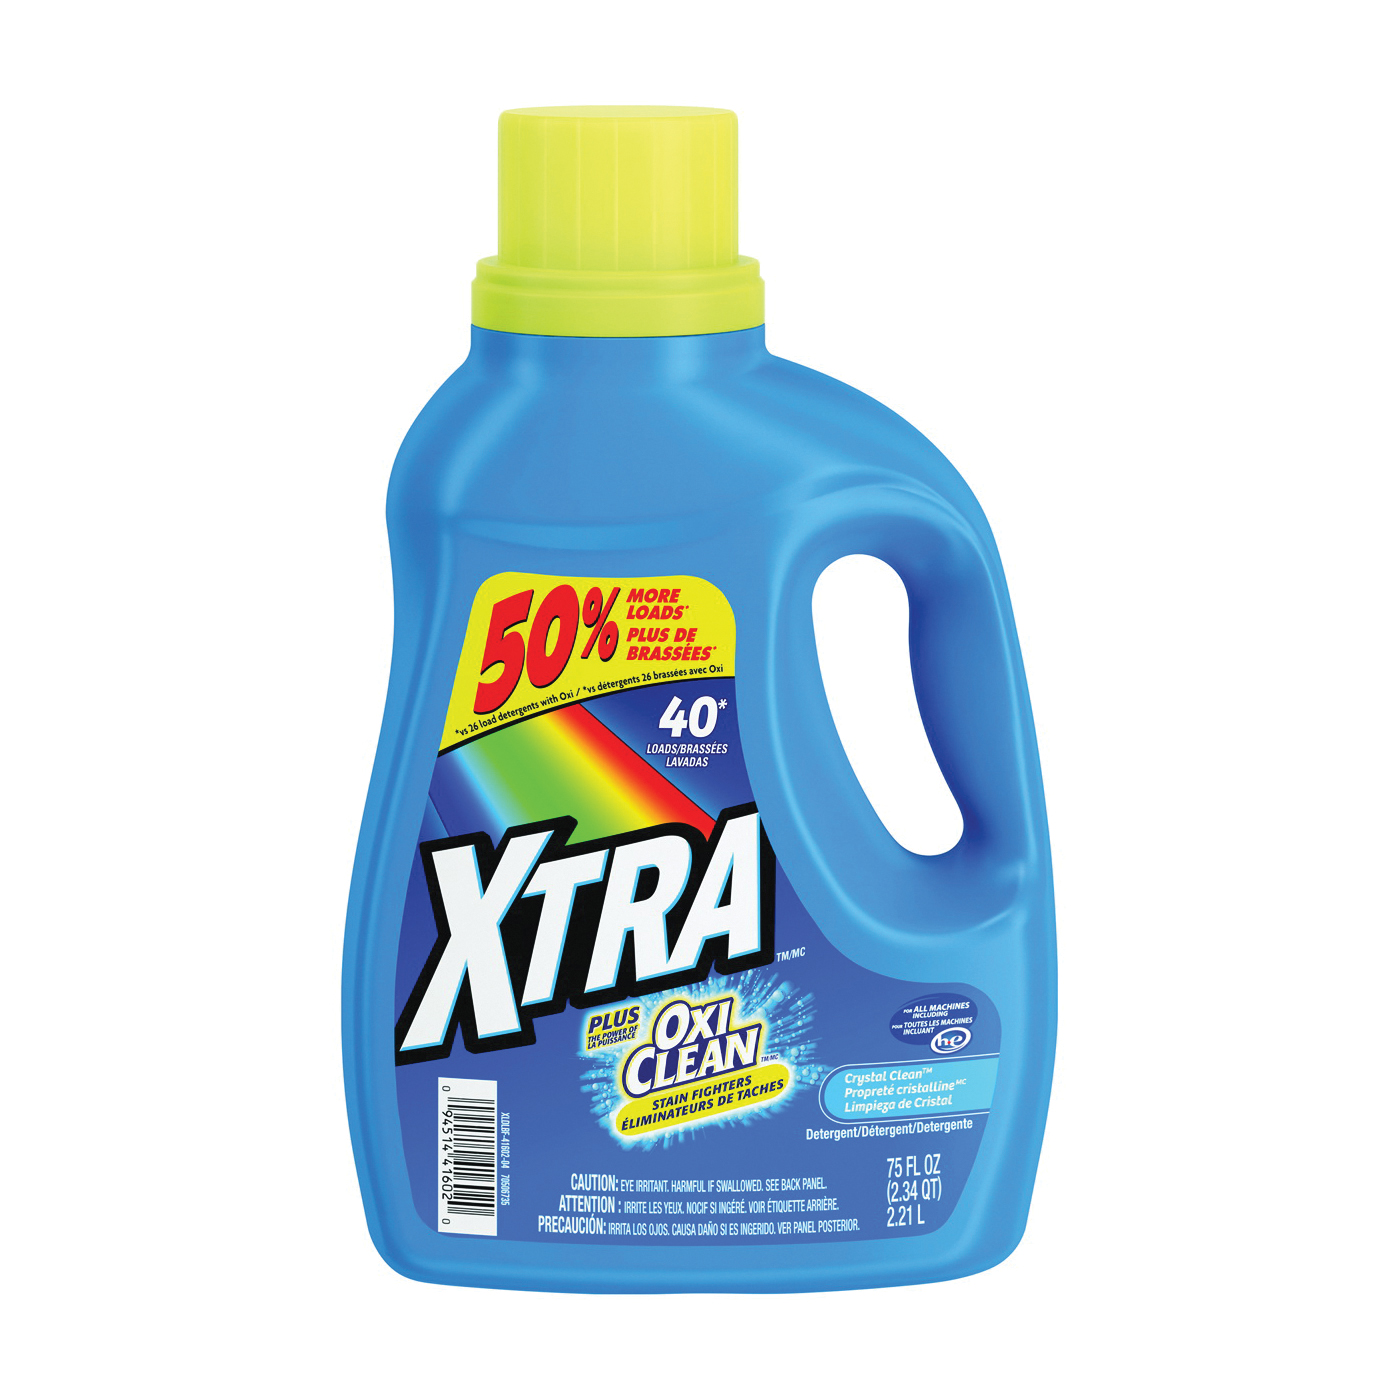 Picture of XTRA 41602 Laundry Detergent, 75 oz, Bottle, Liquid, Clean Crystal